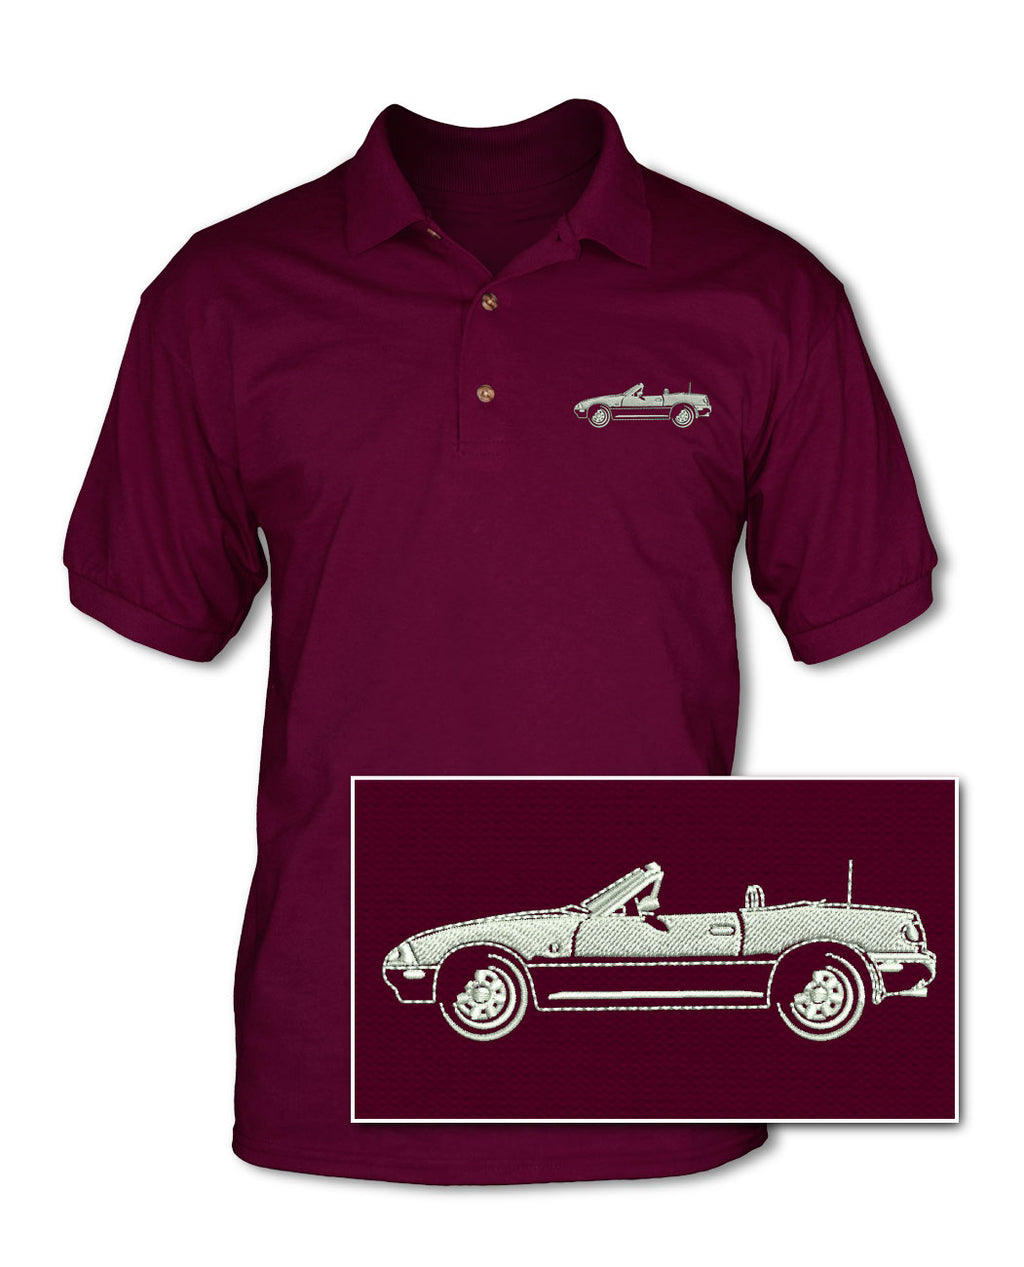 Mazda Miata MX-5 Convertible Adult Pique Polo Shirt - Side View